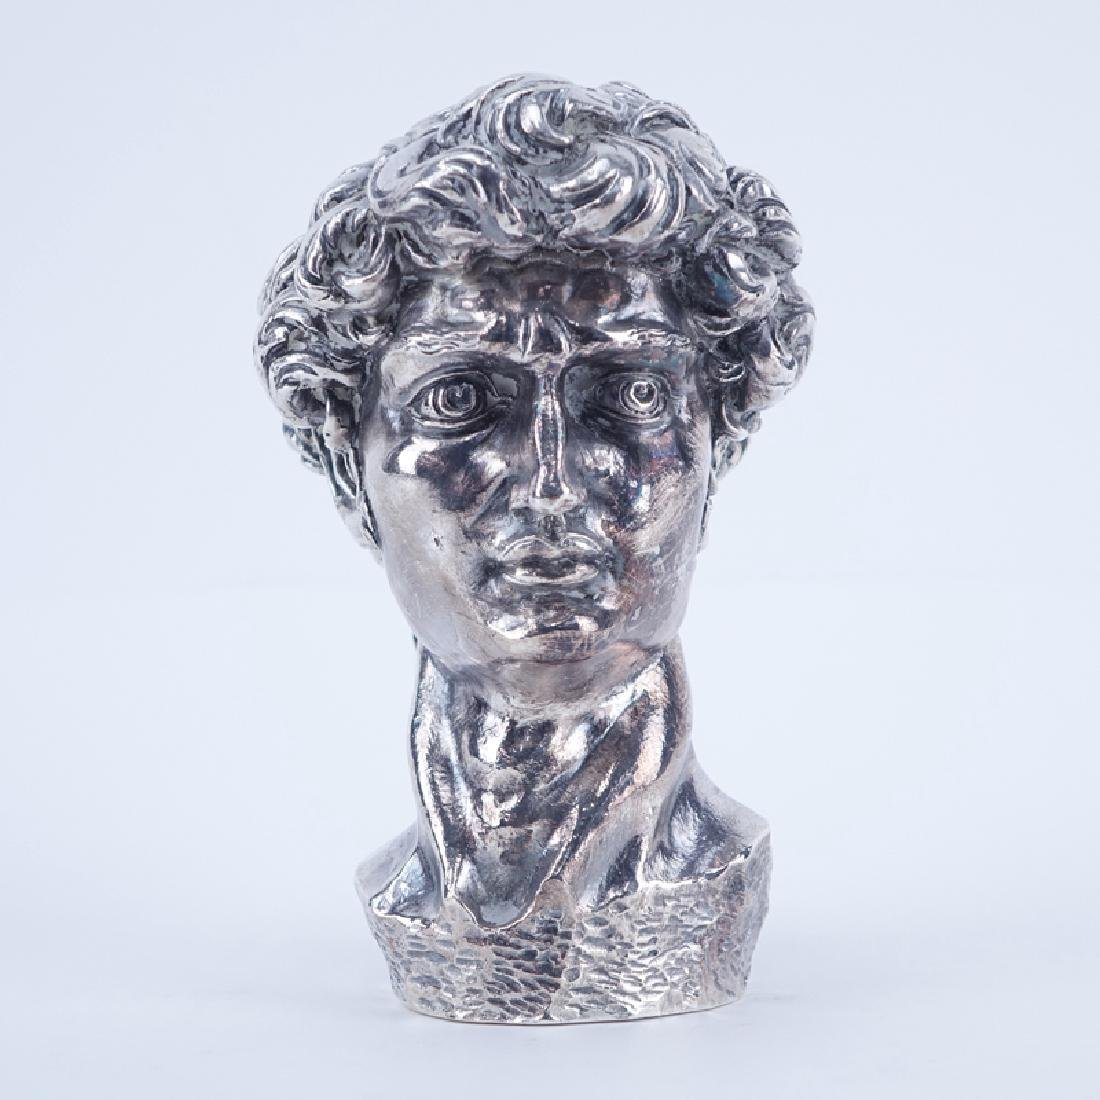 Sterling Silver Clad Bust Of David. Marked 925